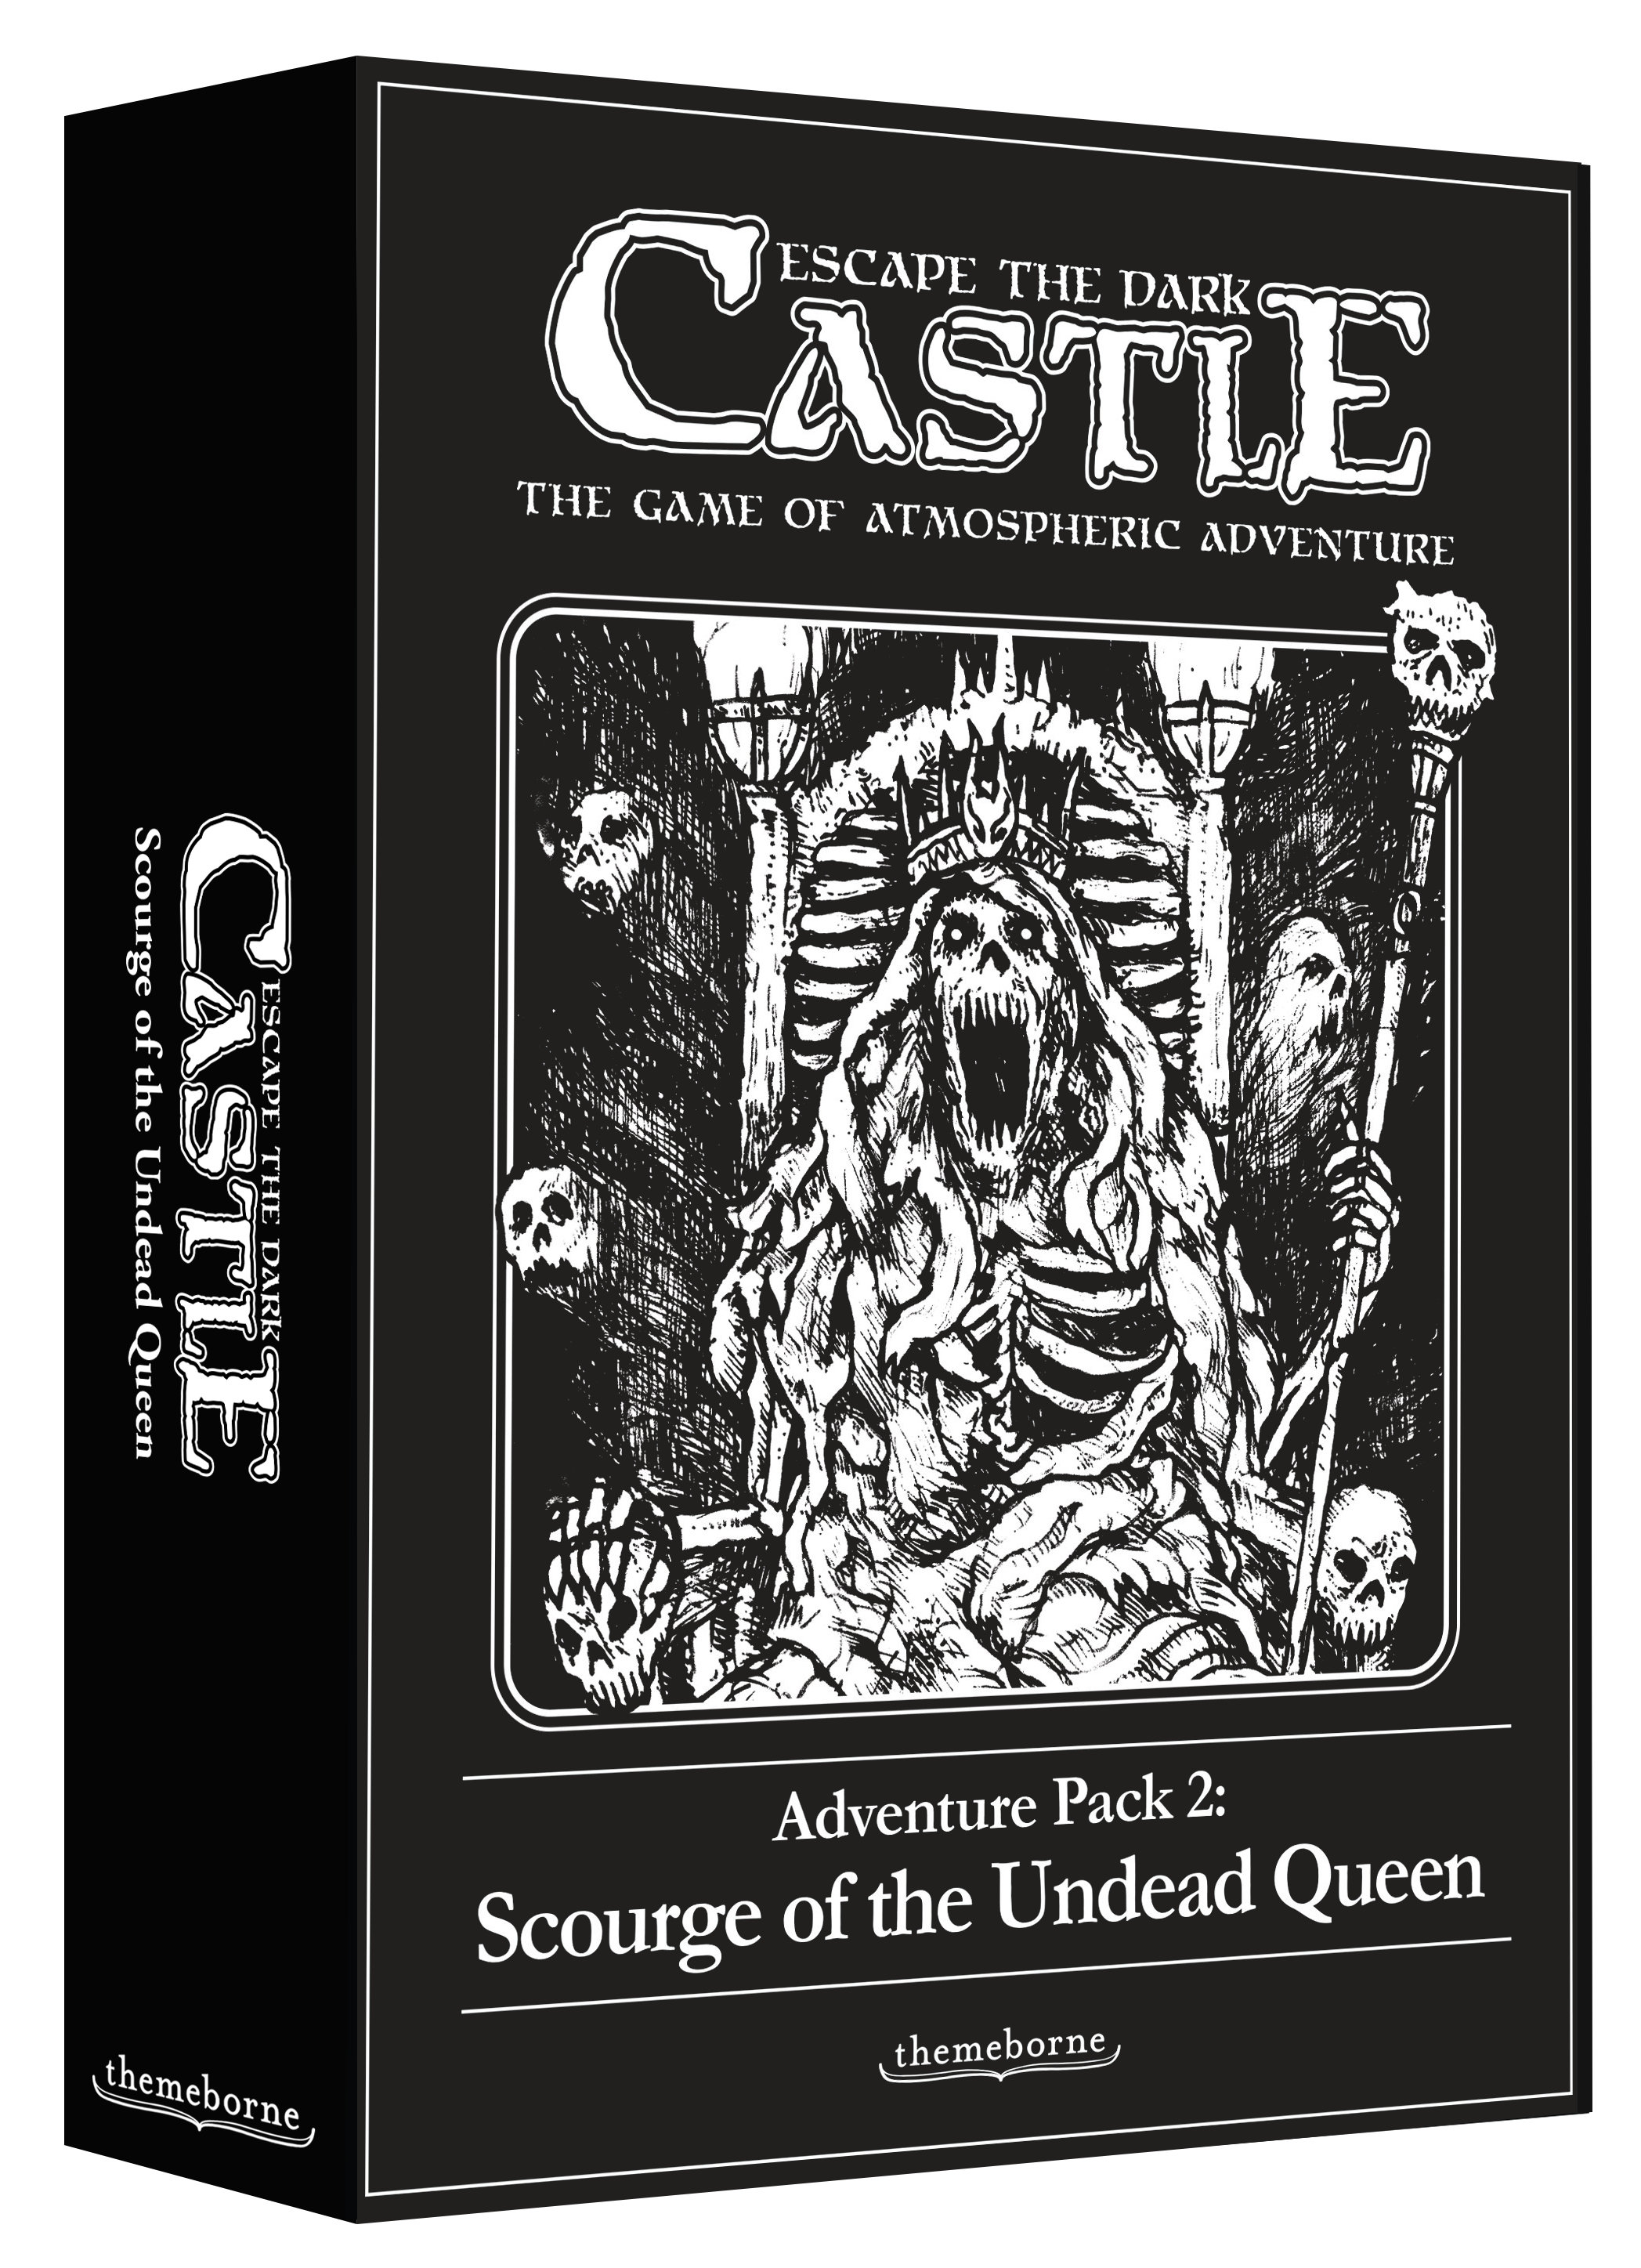 - Contains:1 New Boss The Undead Queen, a foul necromancer bent on enslaving your soul15 New ChaptersThe Undead Queen's terrifying forces, and new locations within the Dark Castle3 Companion CharactersVital allies to accompany the prisoners and assist in their escape3 Companion Trigger CardsEvent cards which signify the arrival of a Companion3 Companion Dice Used to carry out Companion actions and special abilities2 New ItemsEach a powerful relic for the prisoners to discover1 New Item DiceUsed to apply the powers of a relic